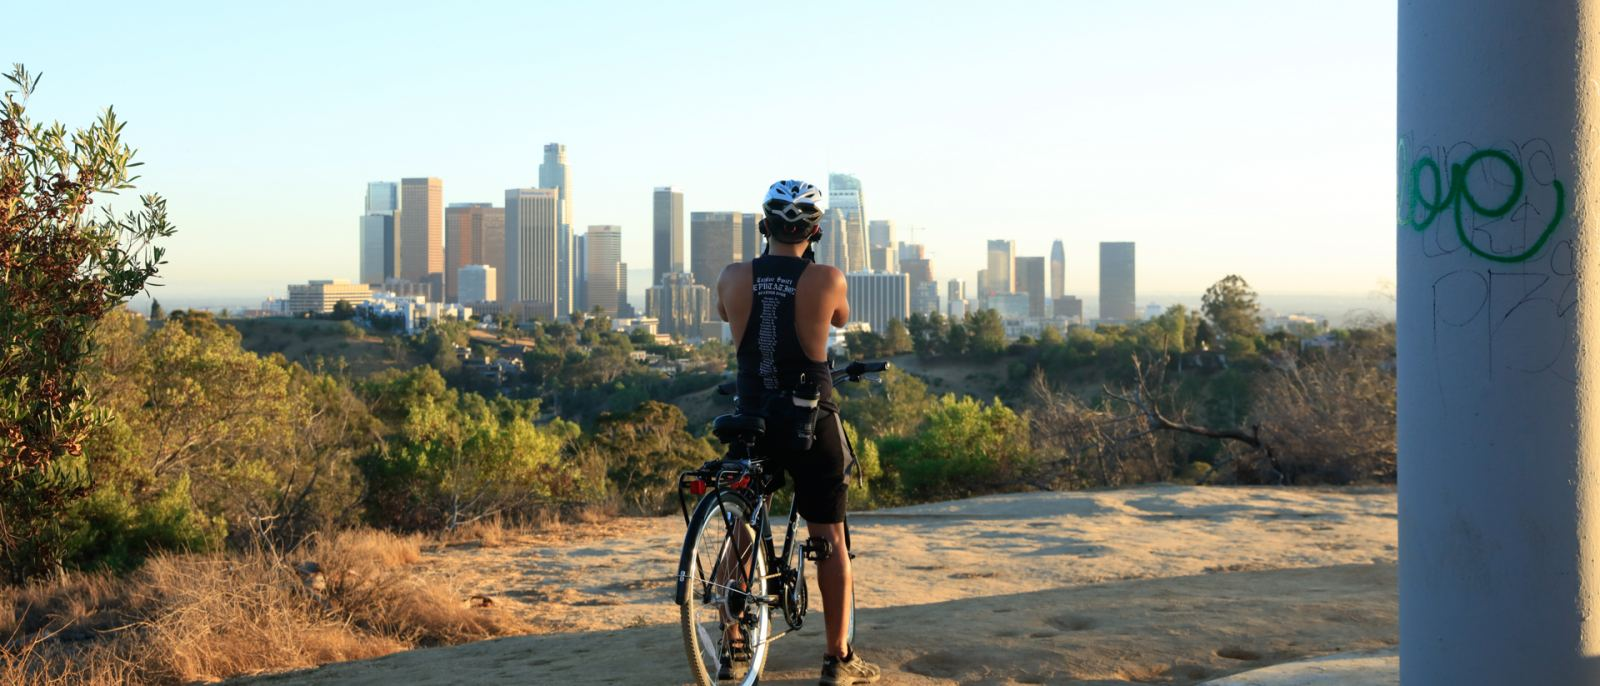 Elysian Park Bicycle